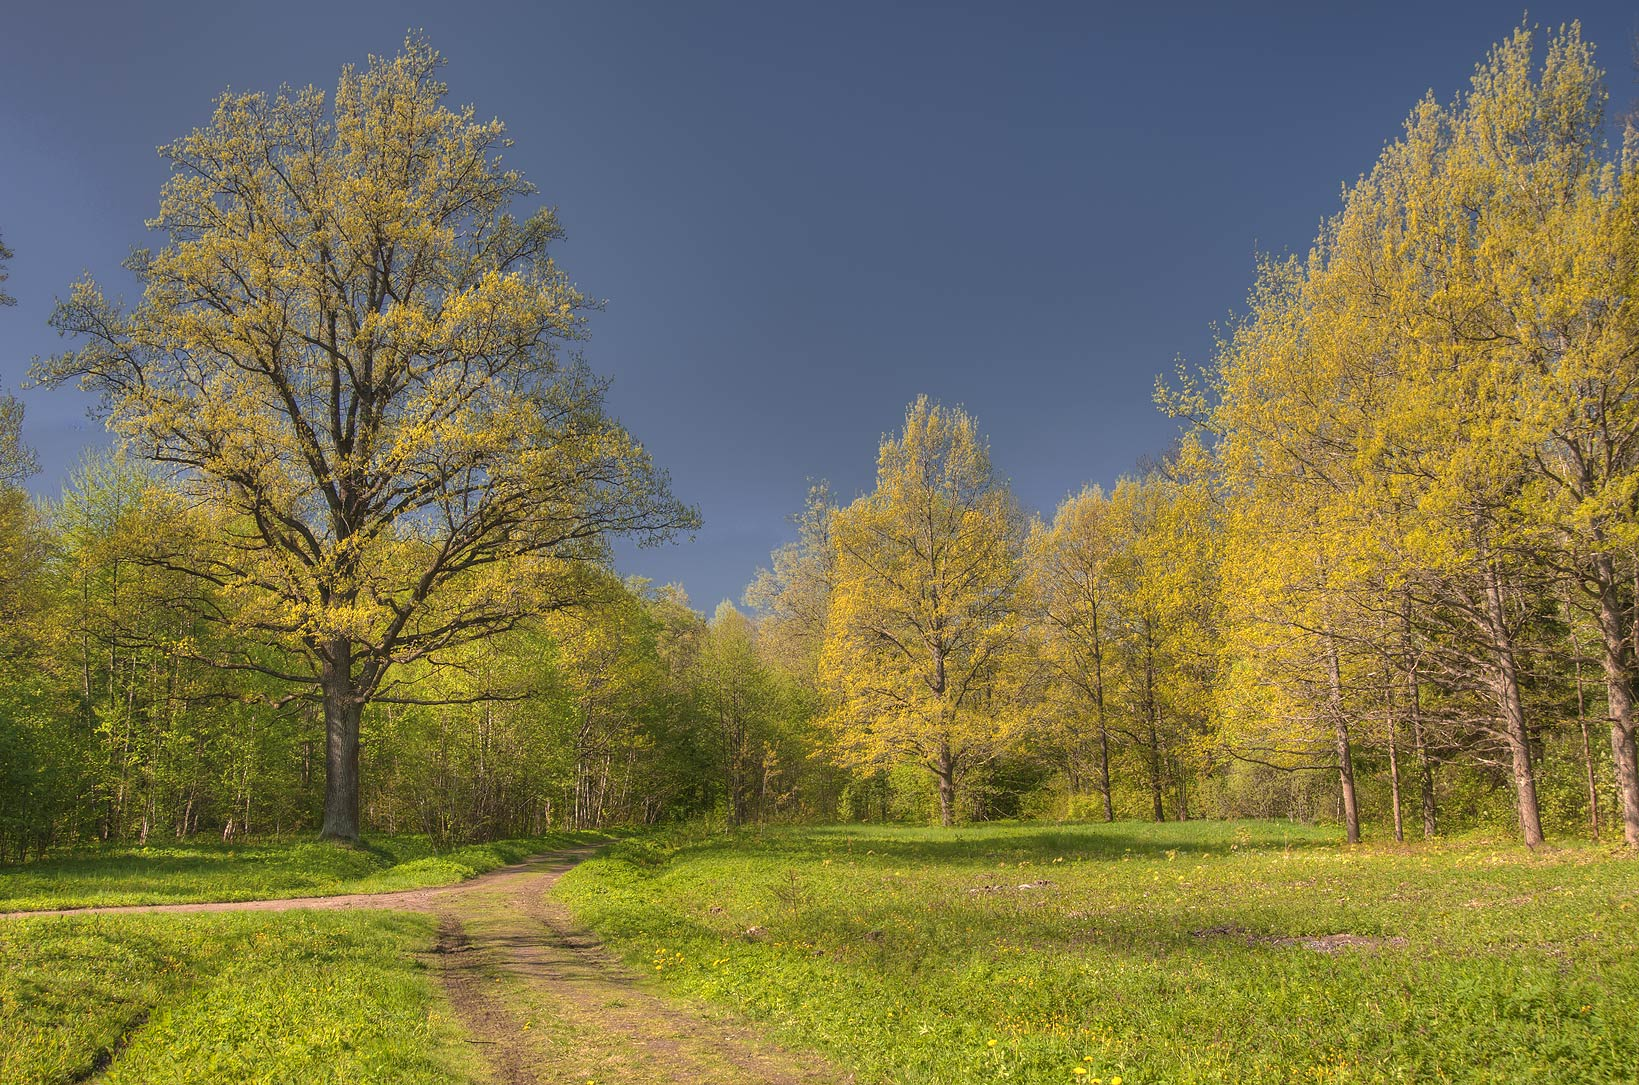 Meadow in a park of Lomonosov (Oranienbaum). West from St.Petersburg, Russia